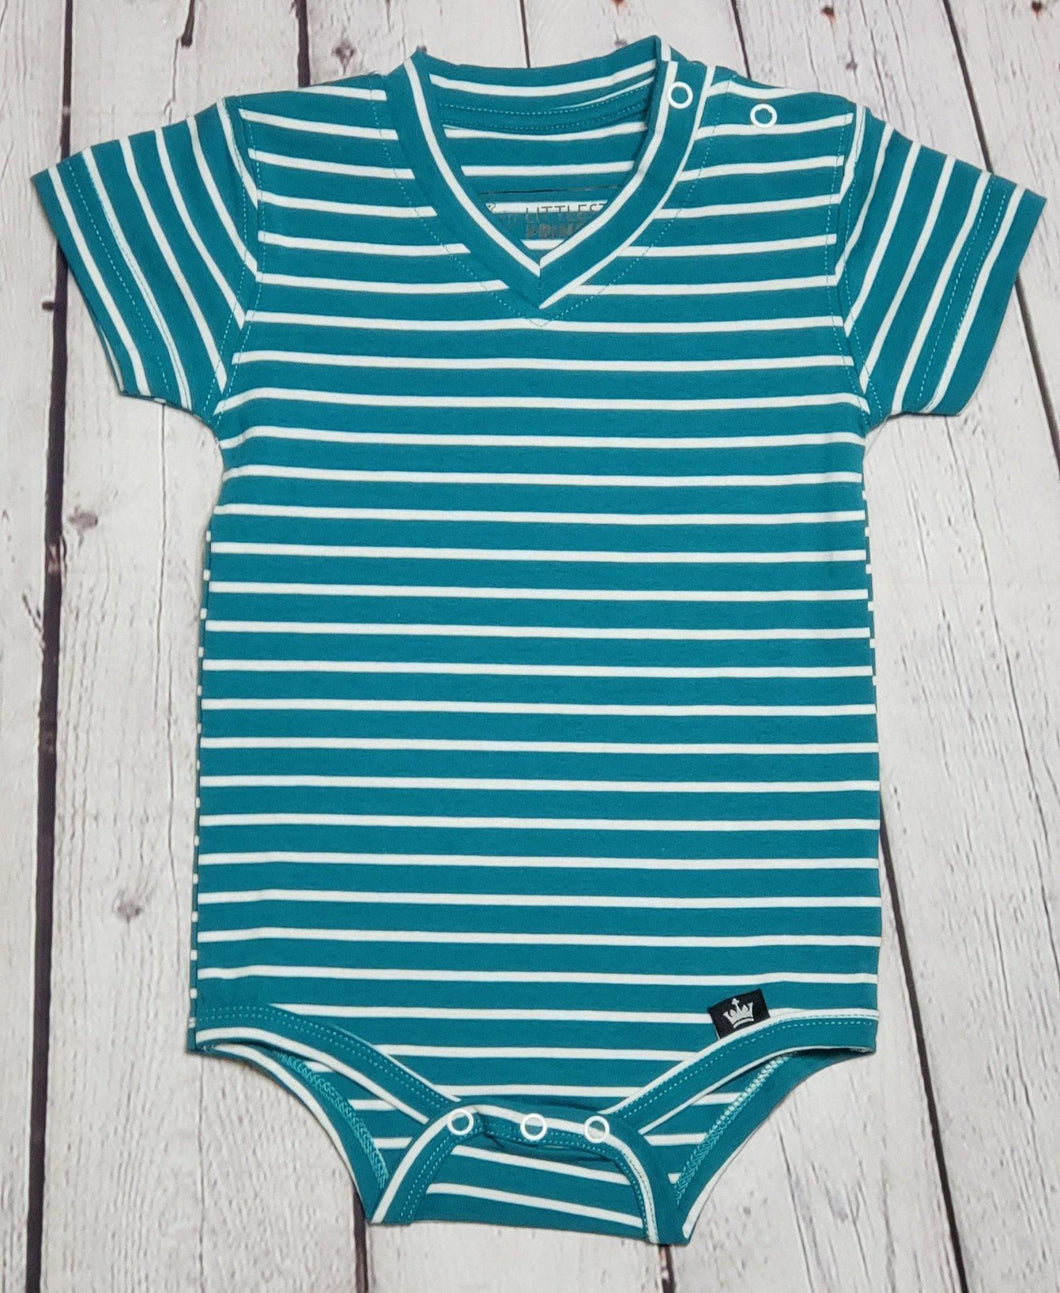 V-neck Pin Striped Bodysuite - LilChic BabyBug Boutique LLC